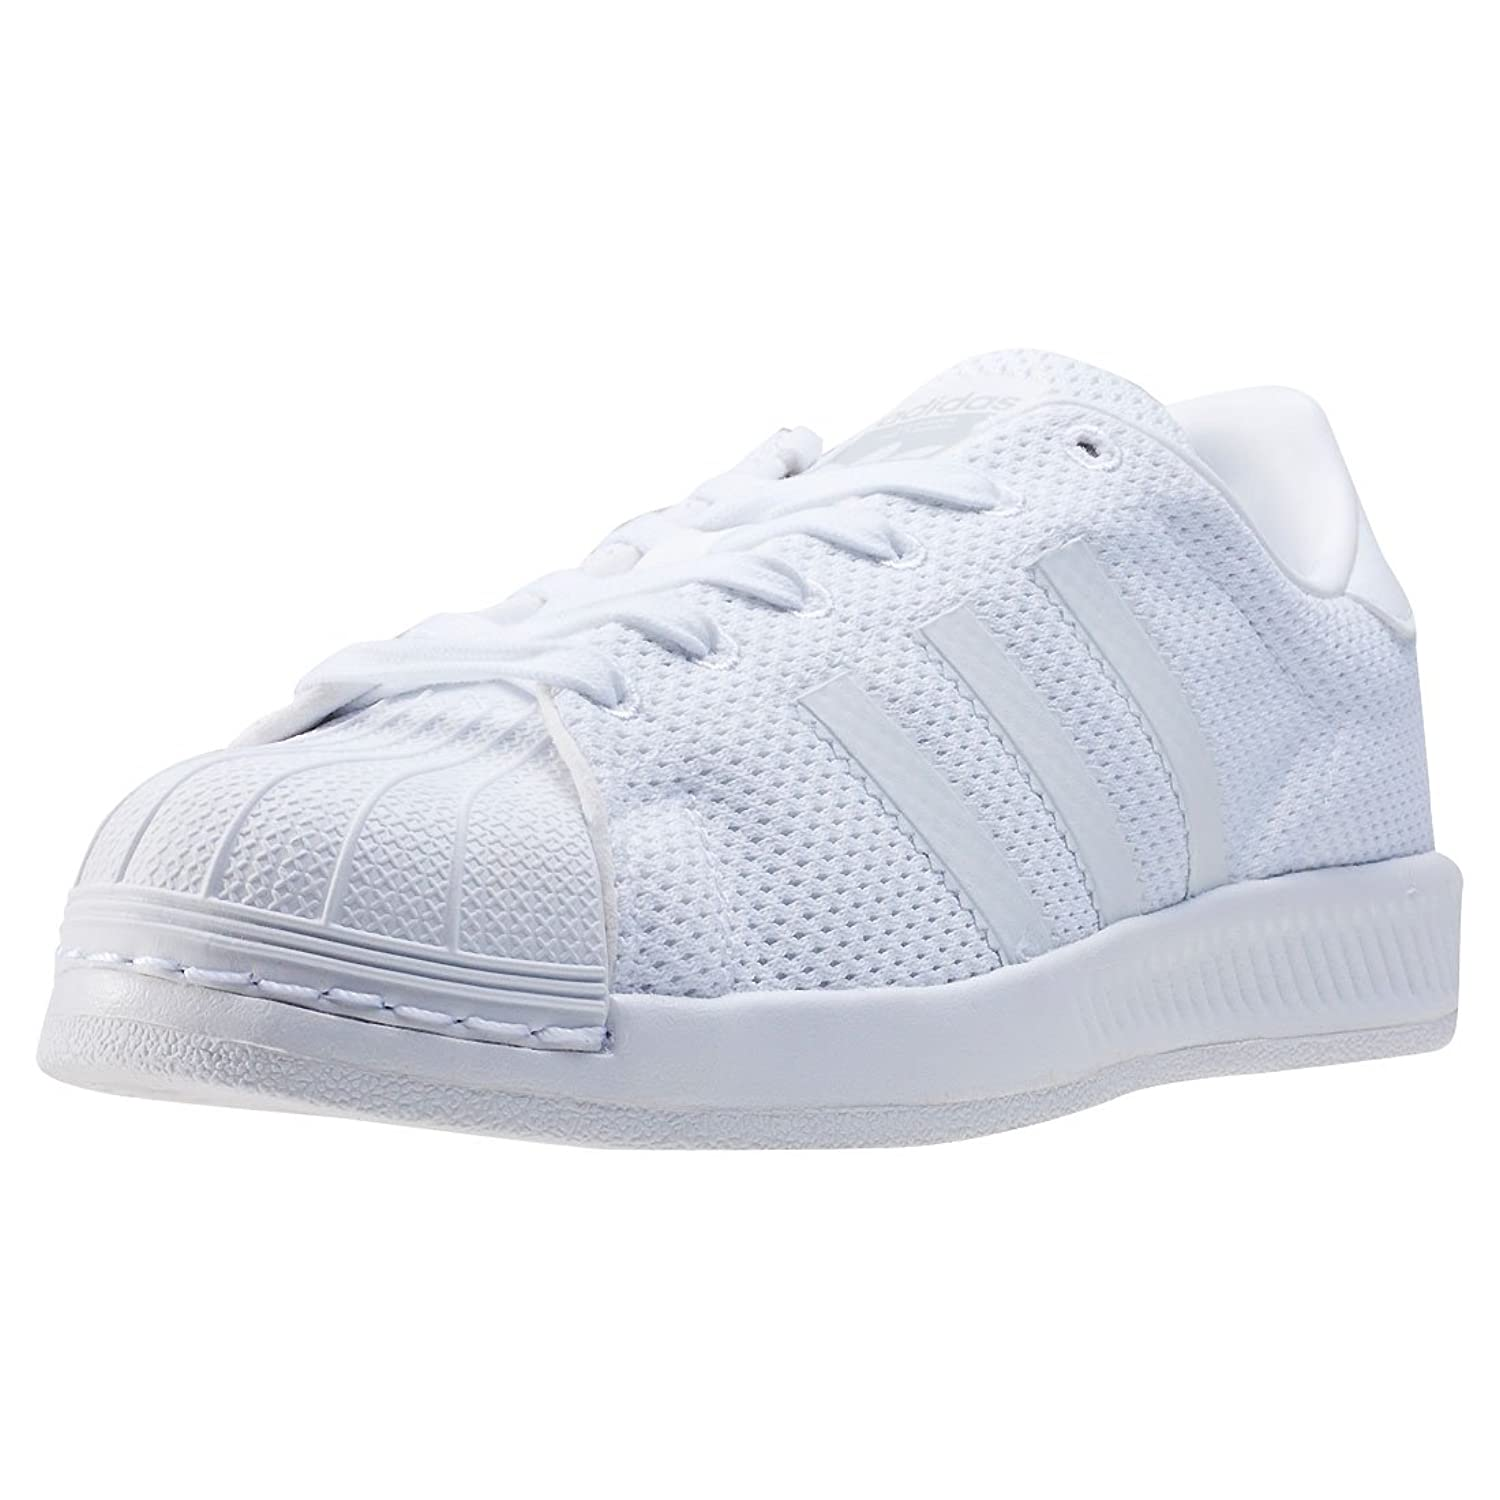 c4702d5fcd1fc2 adidas Superstar Bounce J Kids Trainers White White - 5.5 UK